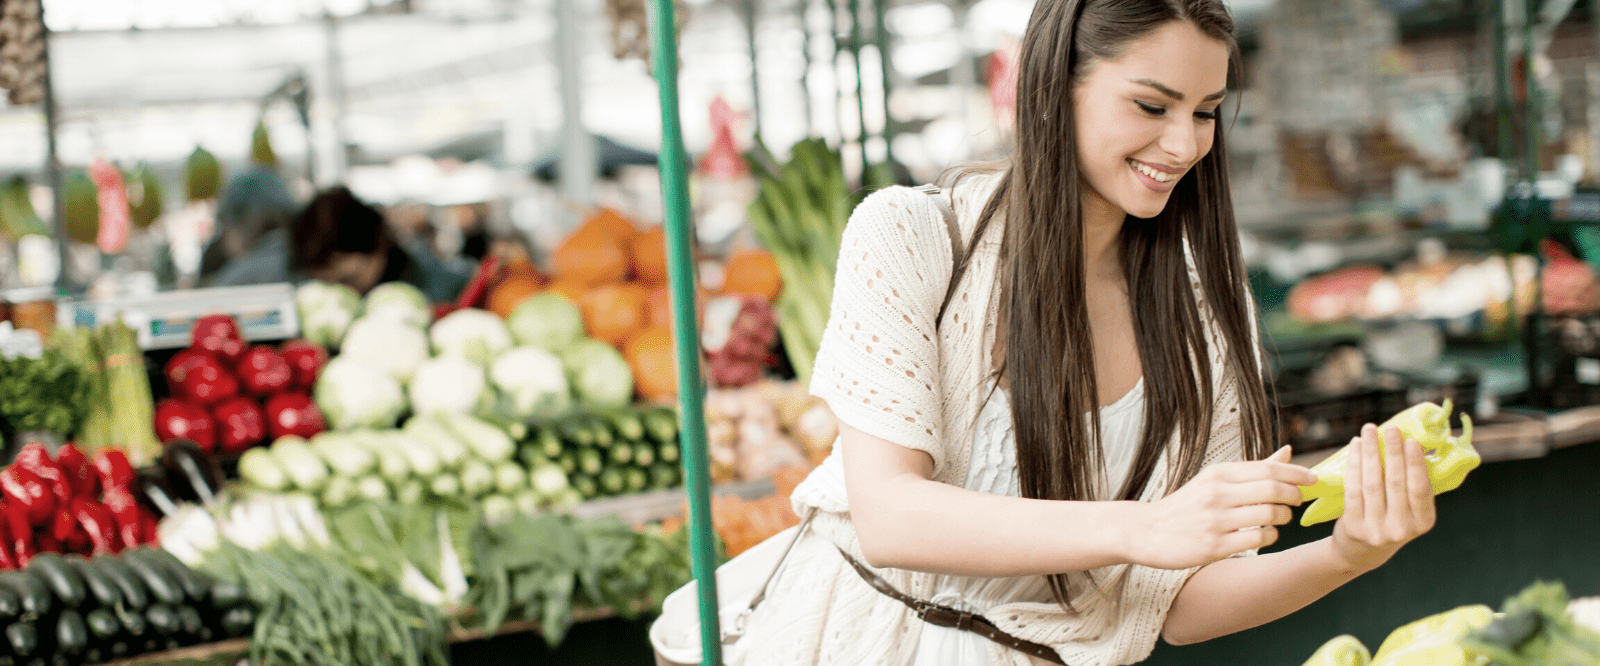 woman shopping at farmers market for mindful eating food